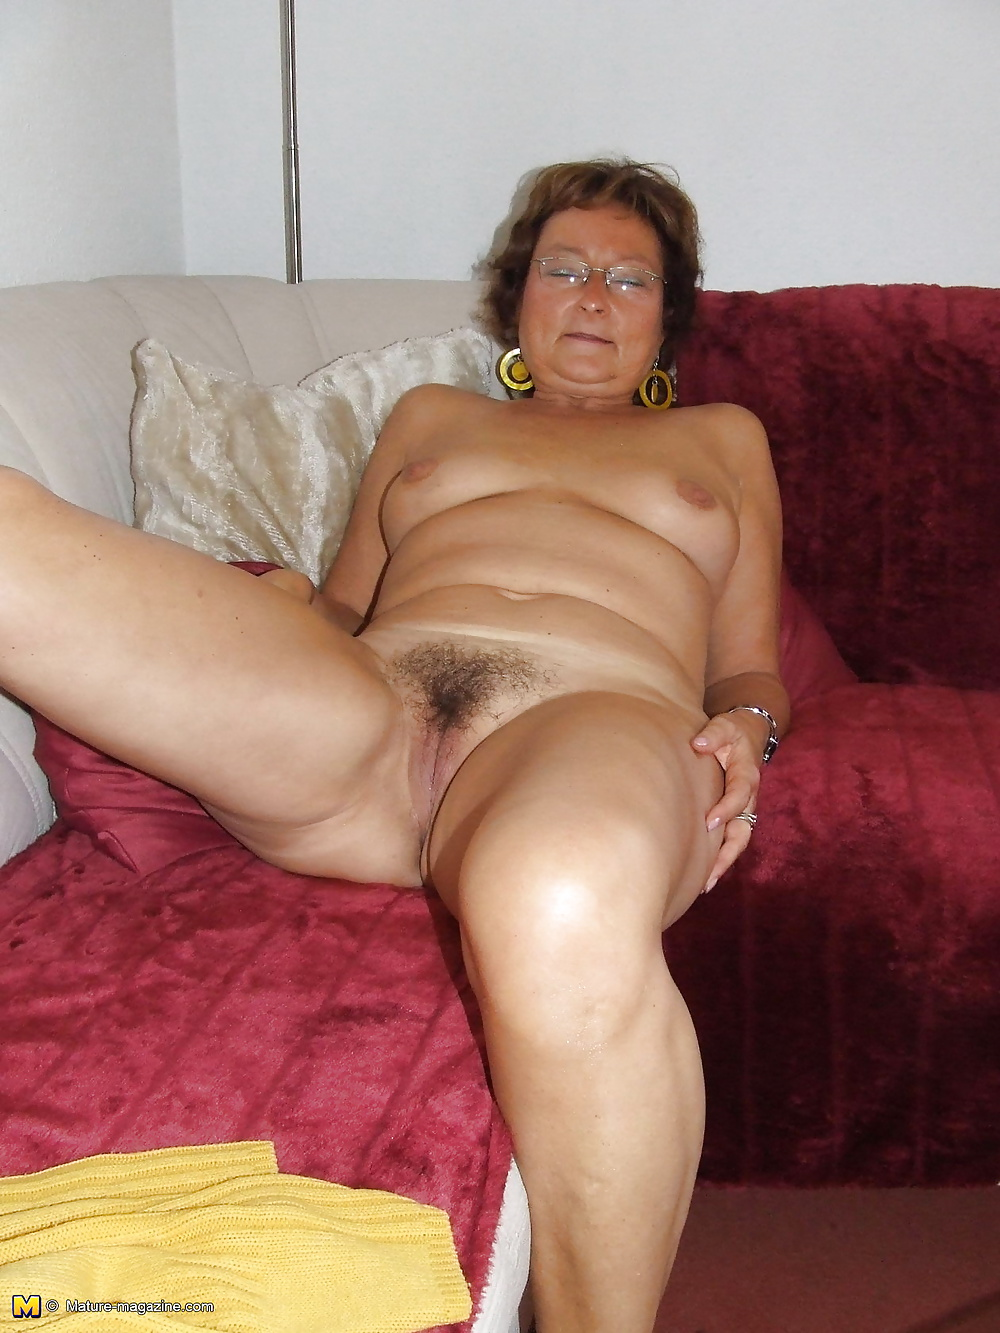 Mature housewives in the nude, sexy busty pics naked